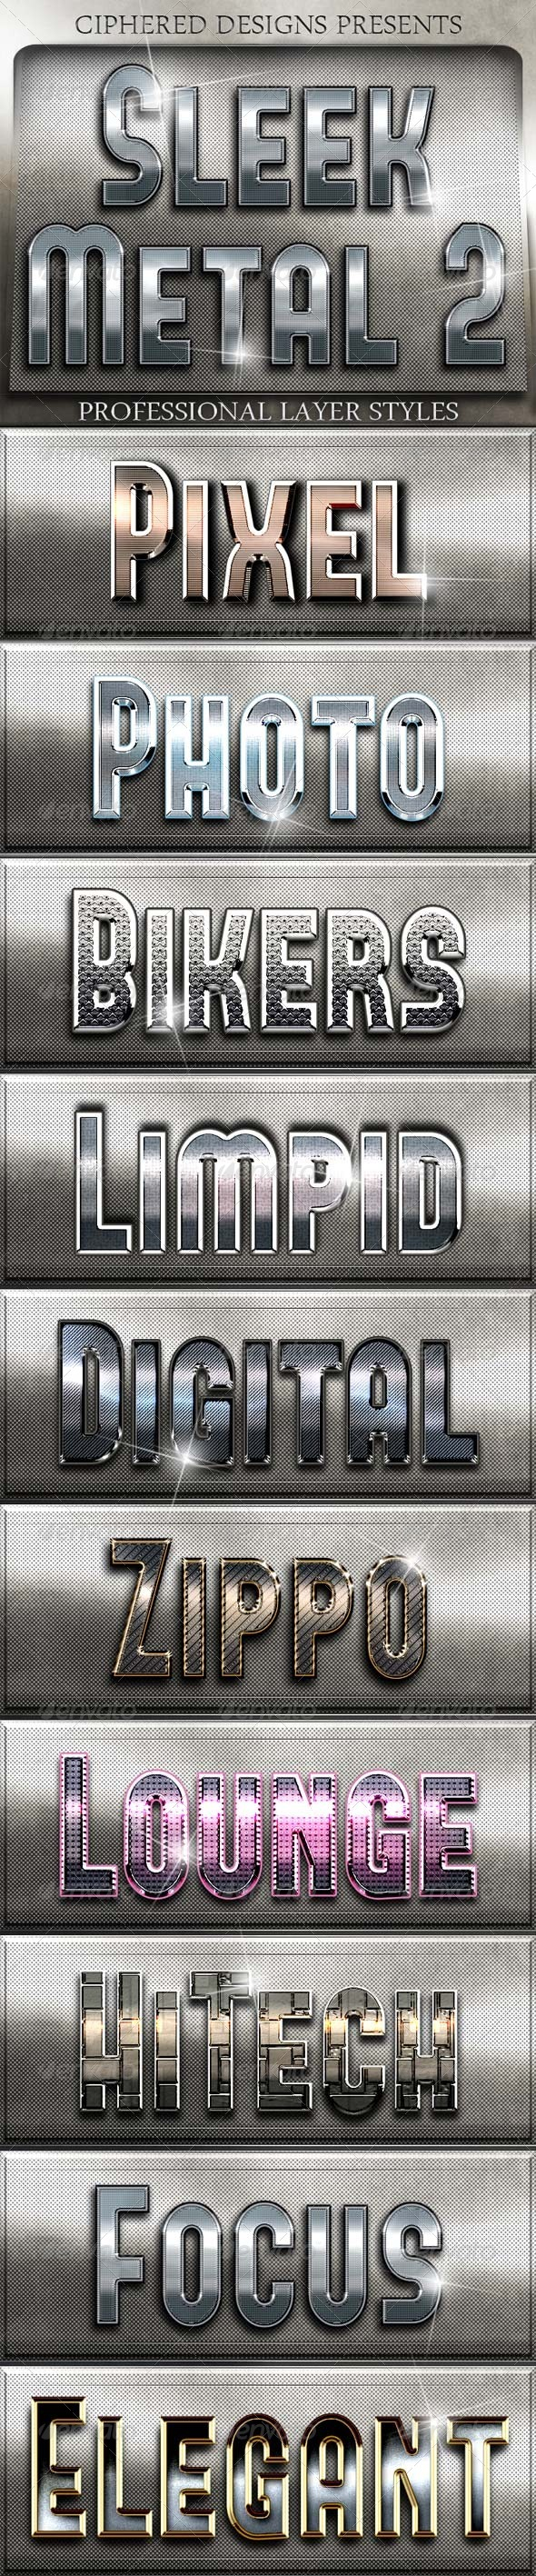 Sleek Metal II - Professional Layer Styles - Text Effects Styles